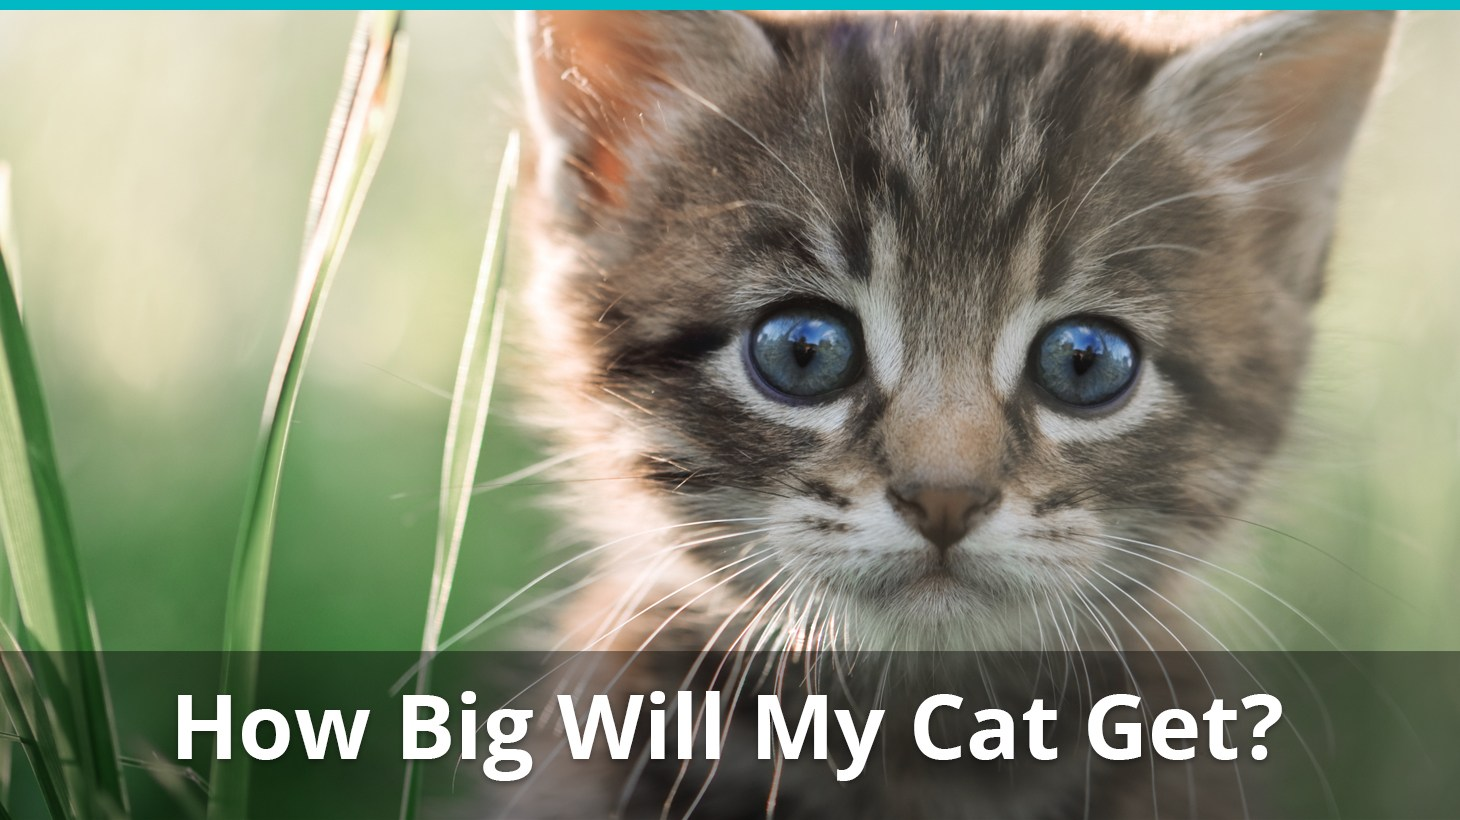 How Big Will My Kitten Get When Is It Fully Grown Plus Growth